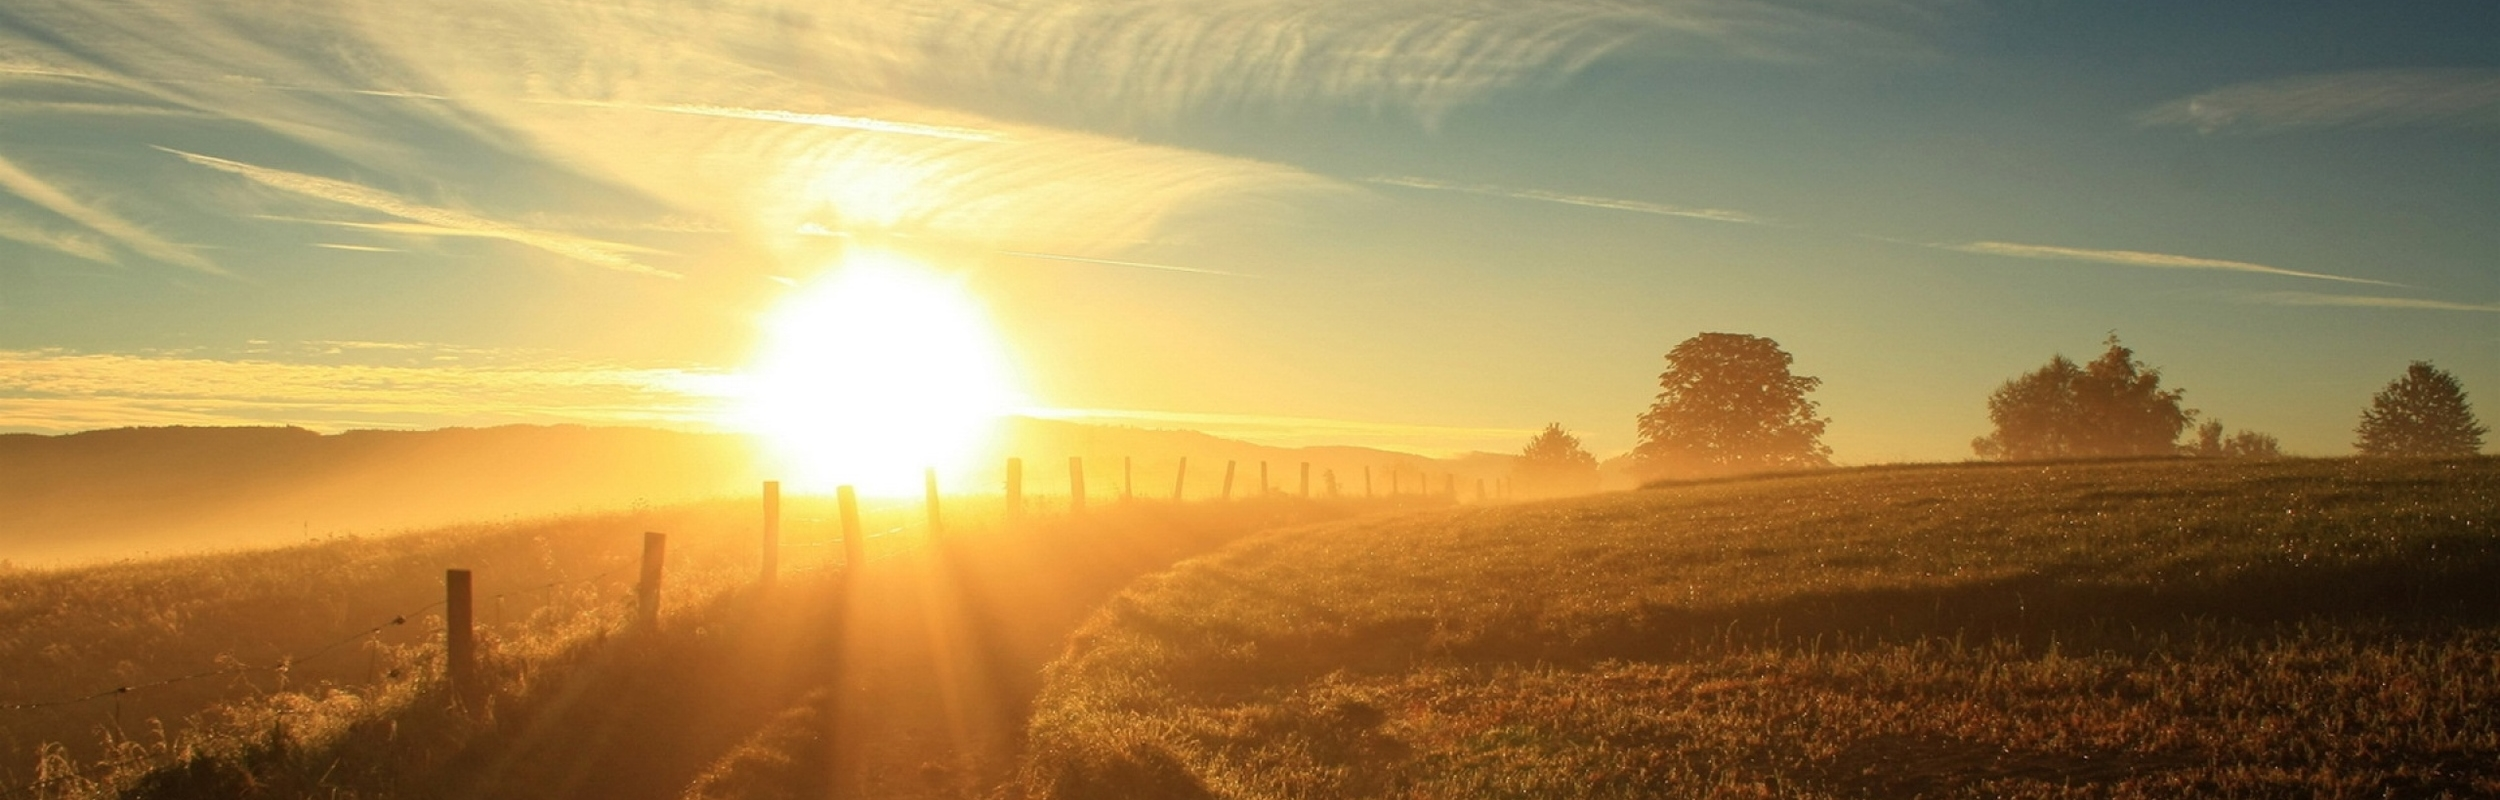 sun_light_dazzle_expensive_country_fence_53964_2560x1600.jpg